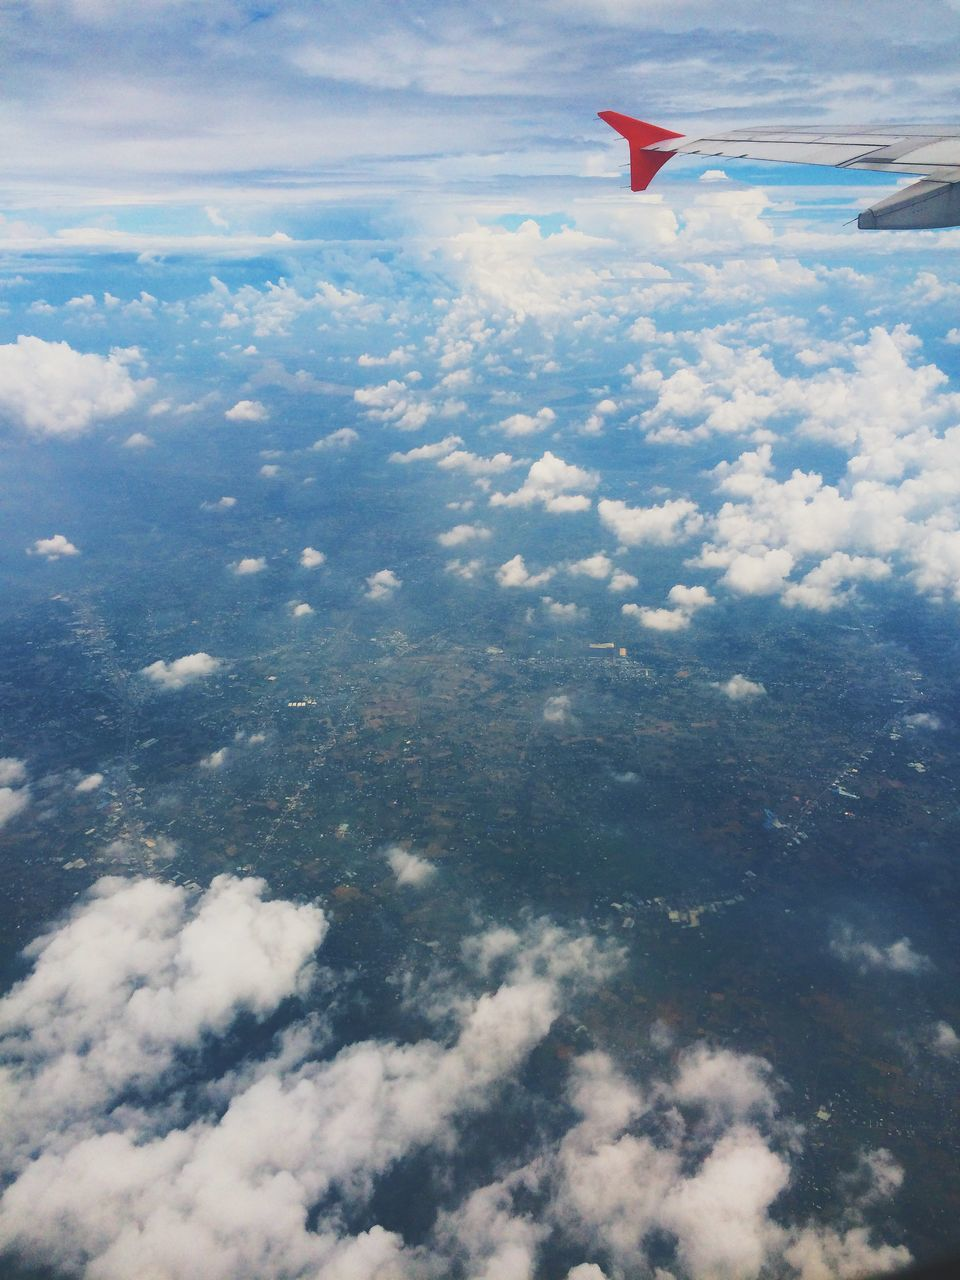 flying, sky, cloud - sky, no people, mid-air, day, nature, outdoors, beauty in nature, scenics, airplane wing